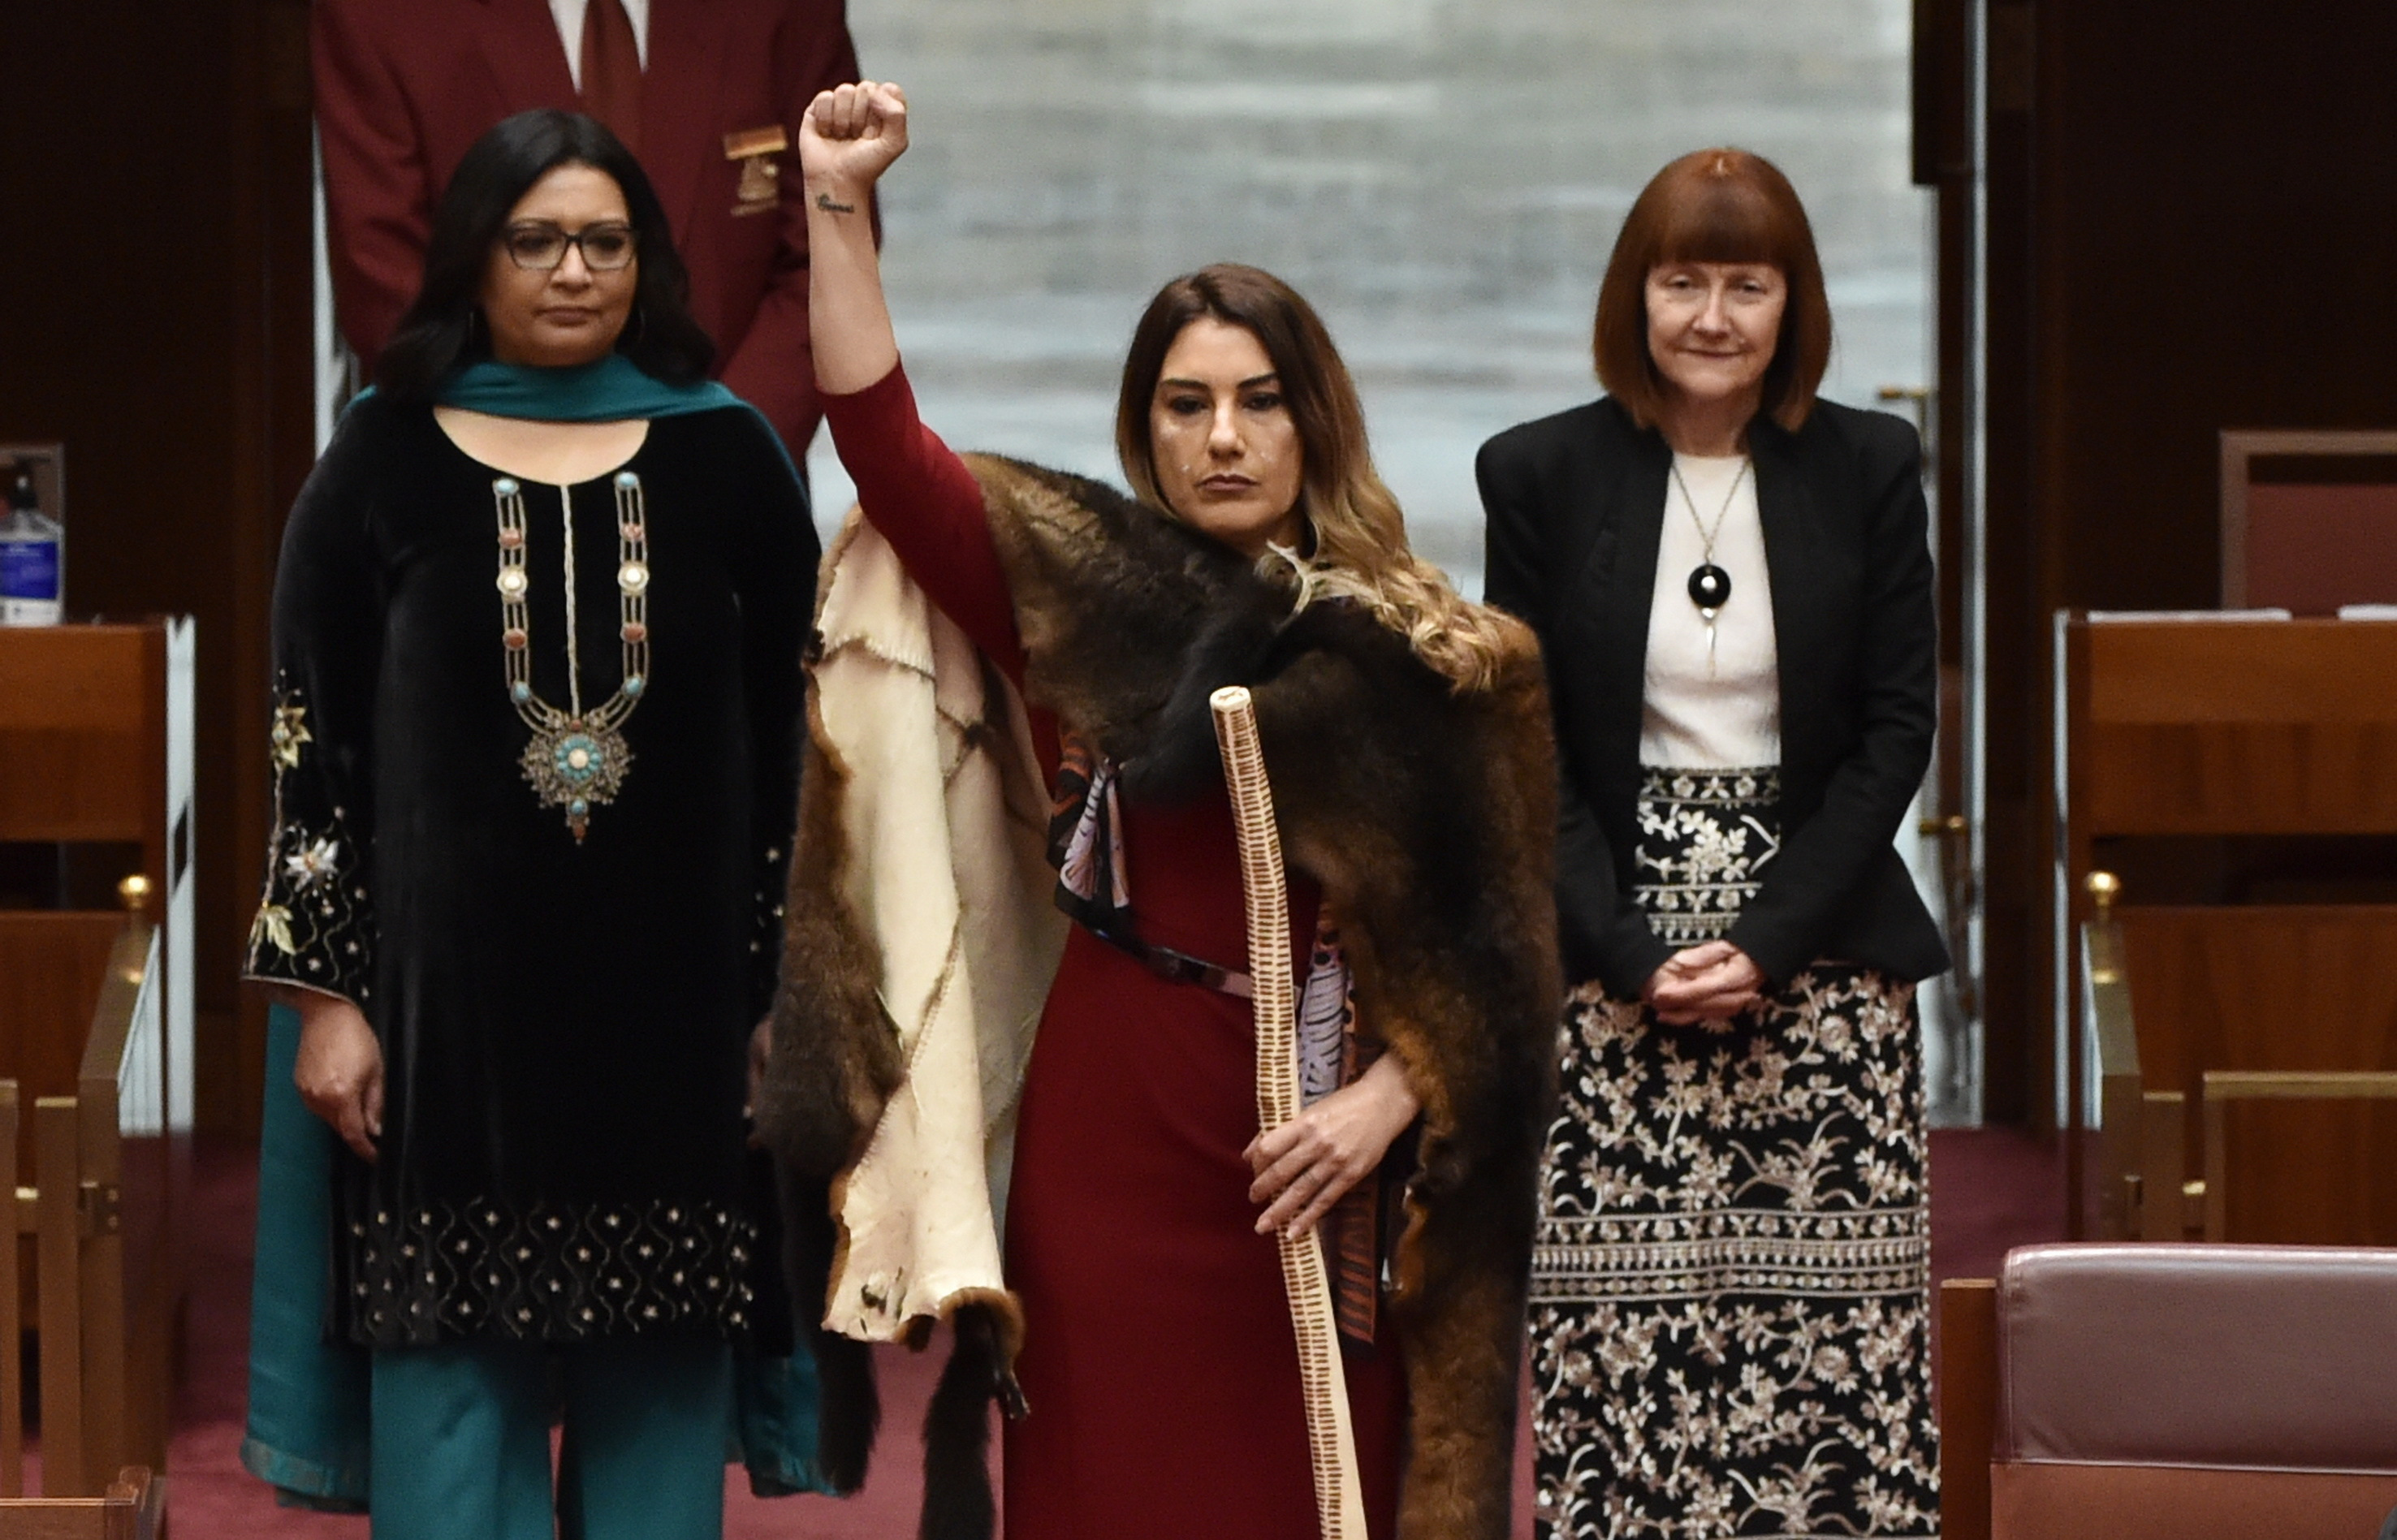 Lidia Thorpe enters the senate for the first time holding a message stick with one raised fist. Senators Mehreen Faruqi and Rachel Siewert stand alongside